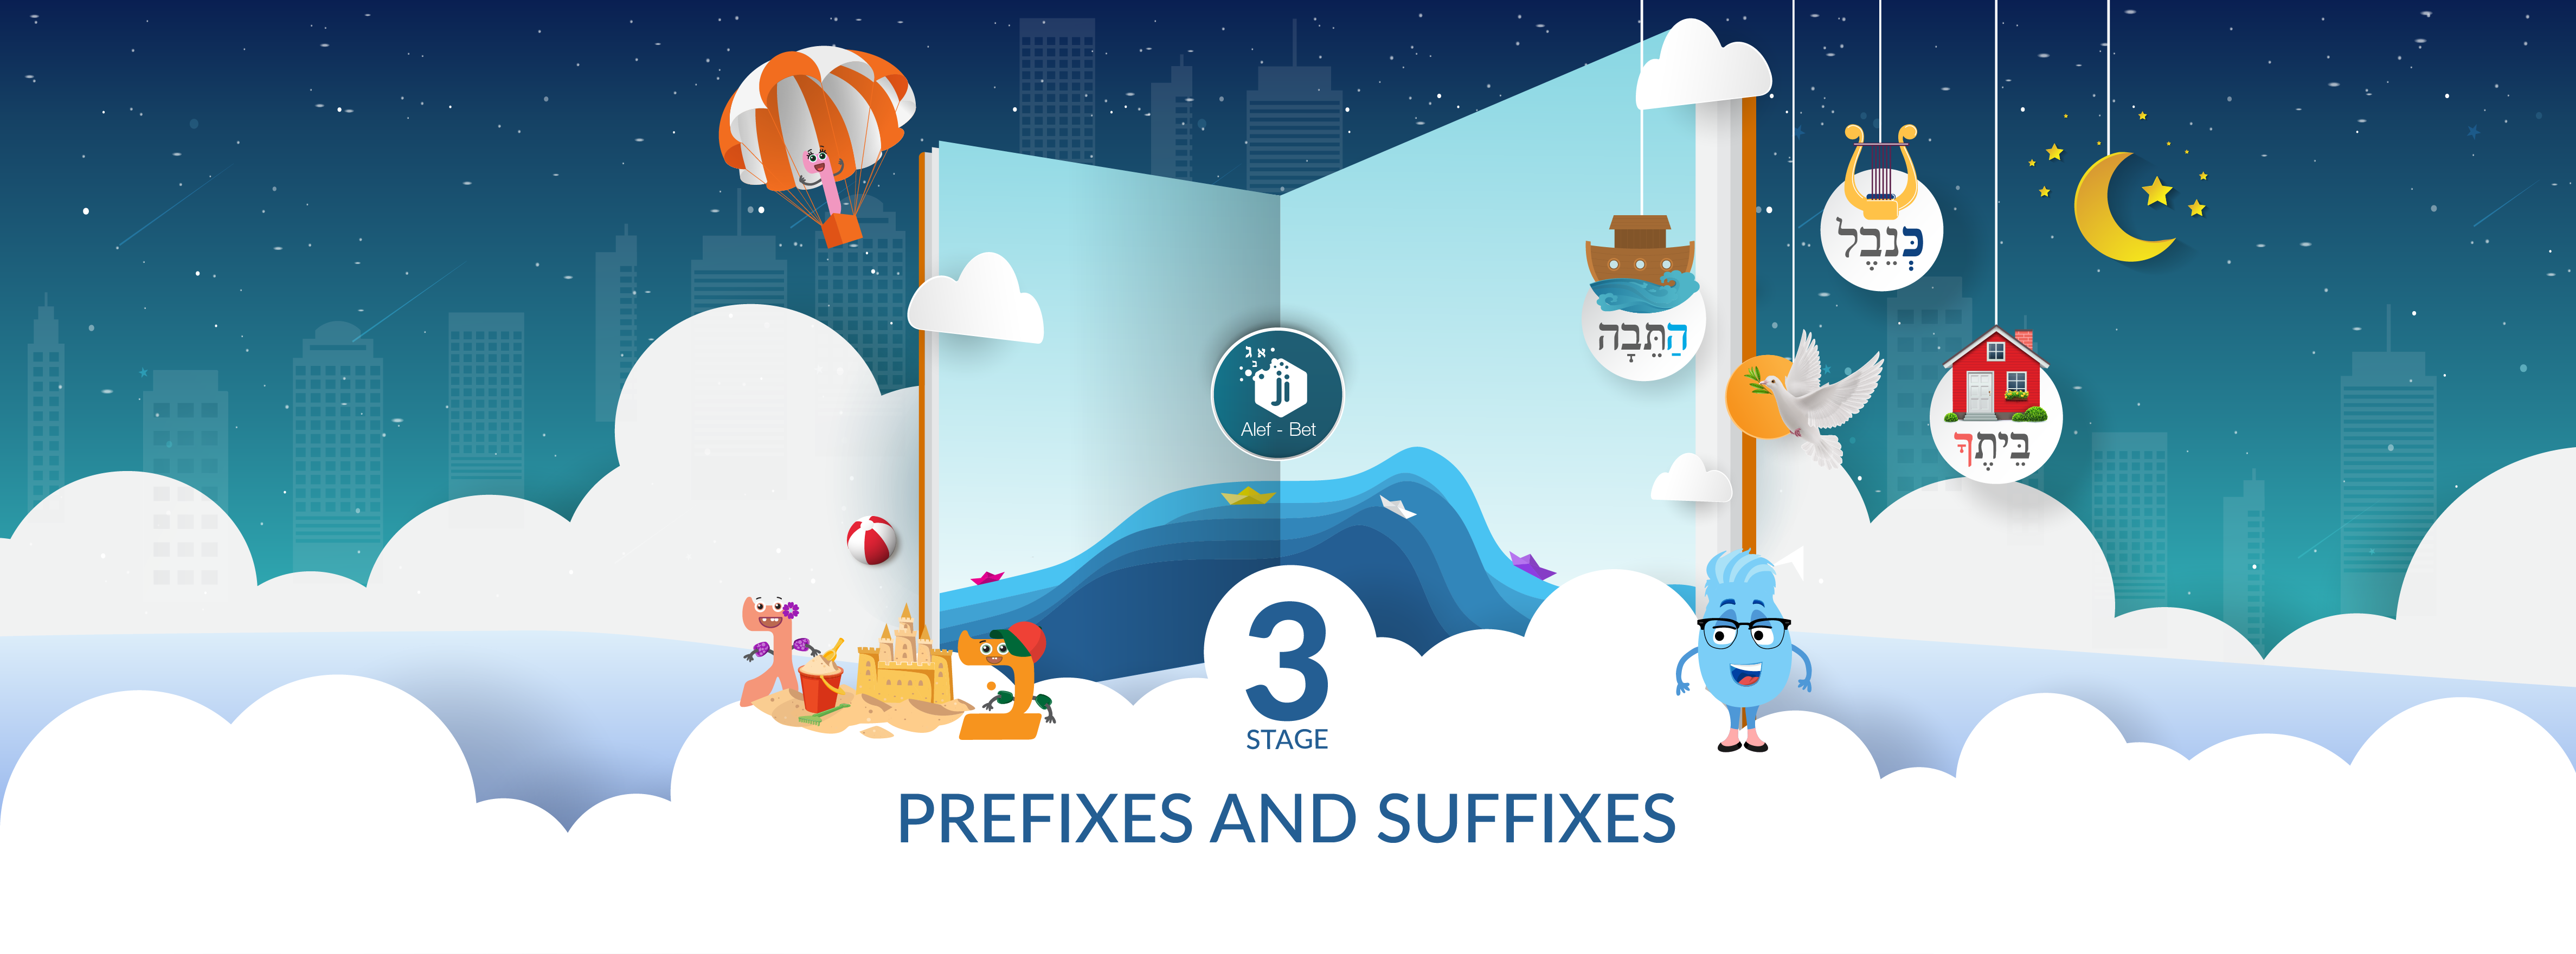 Ji Alef-Bet Series - Stage 3 Prefixes and Suffixes